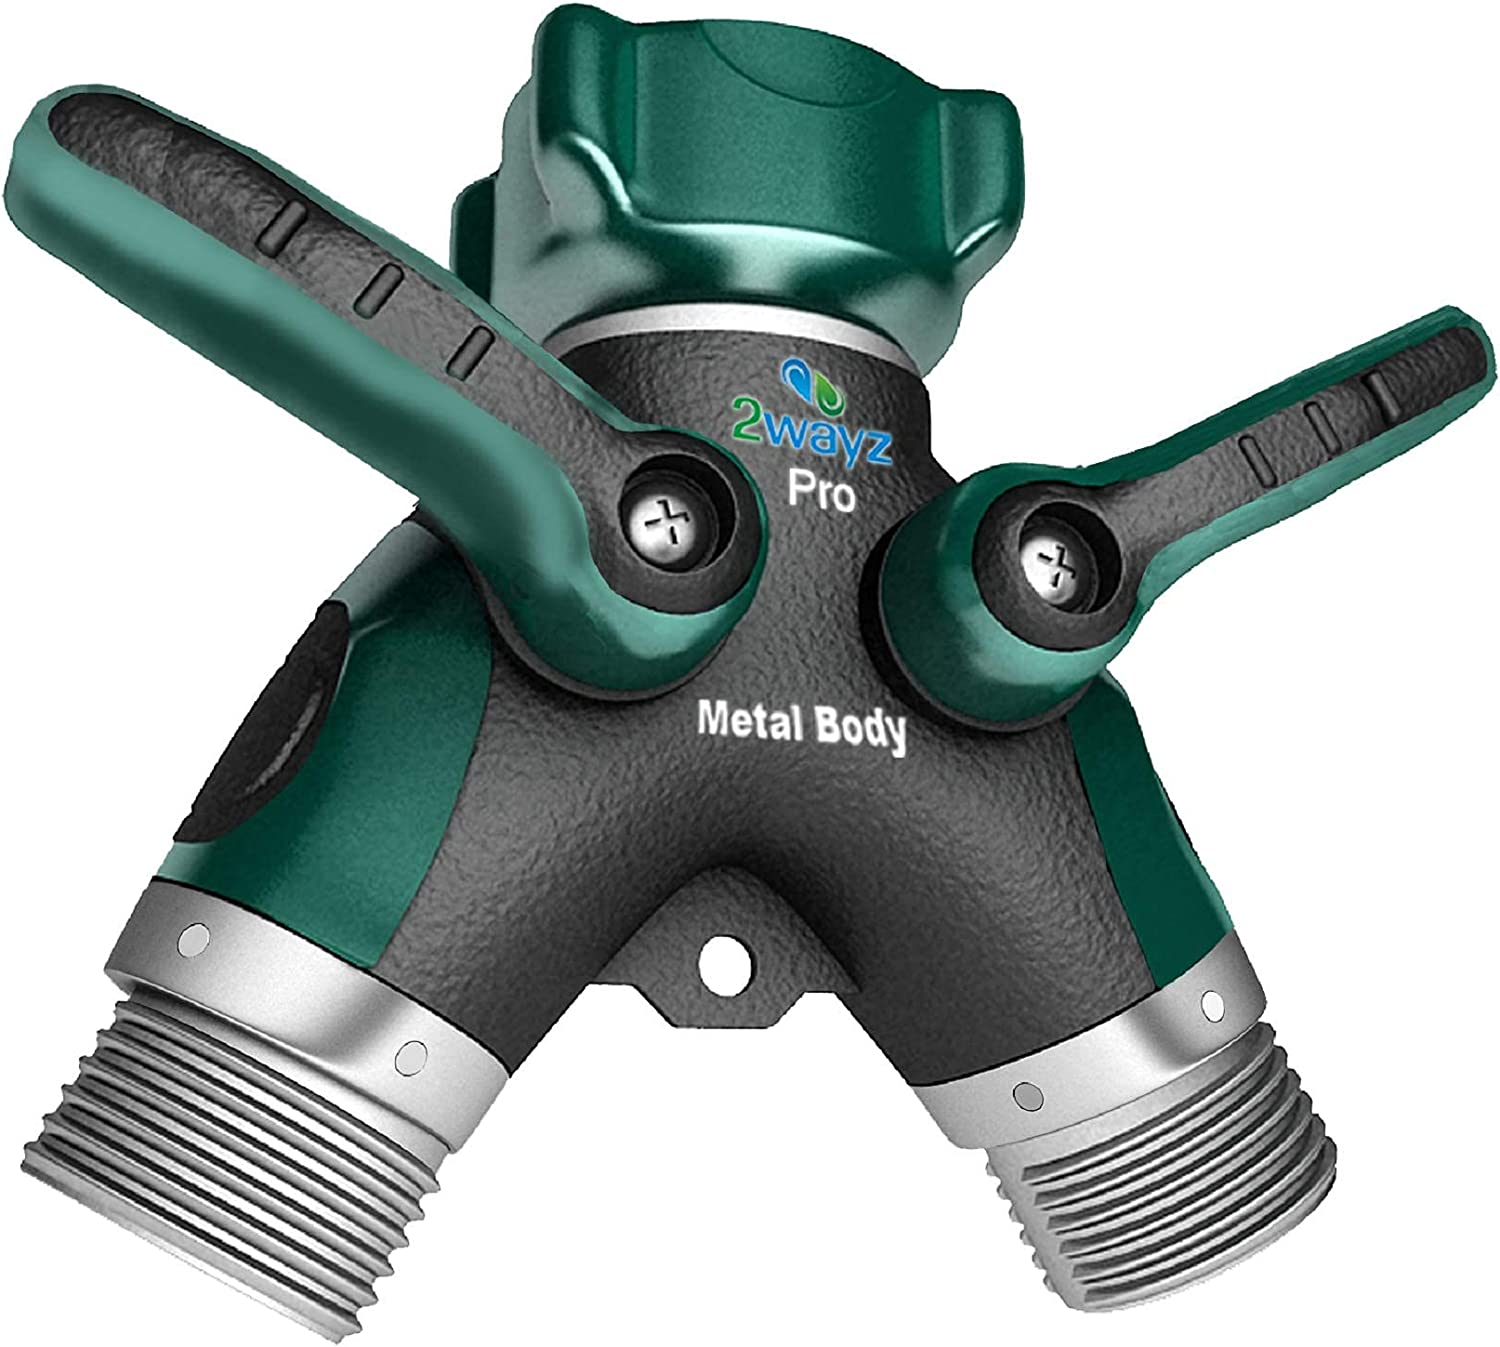 2wayz All Metal Body Garden Hose Splitter. 2021 Version - 100% Secured, Bolted & Threaded. Easy Grip, Smooth Long Handles y Valve